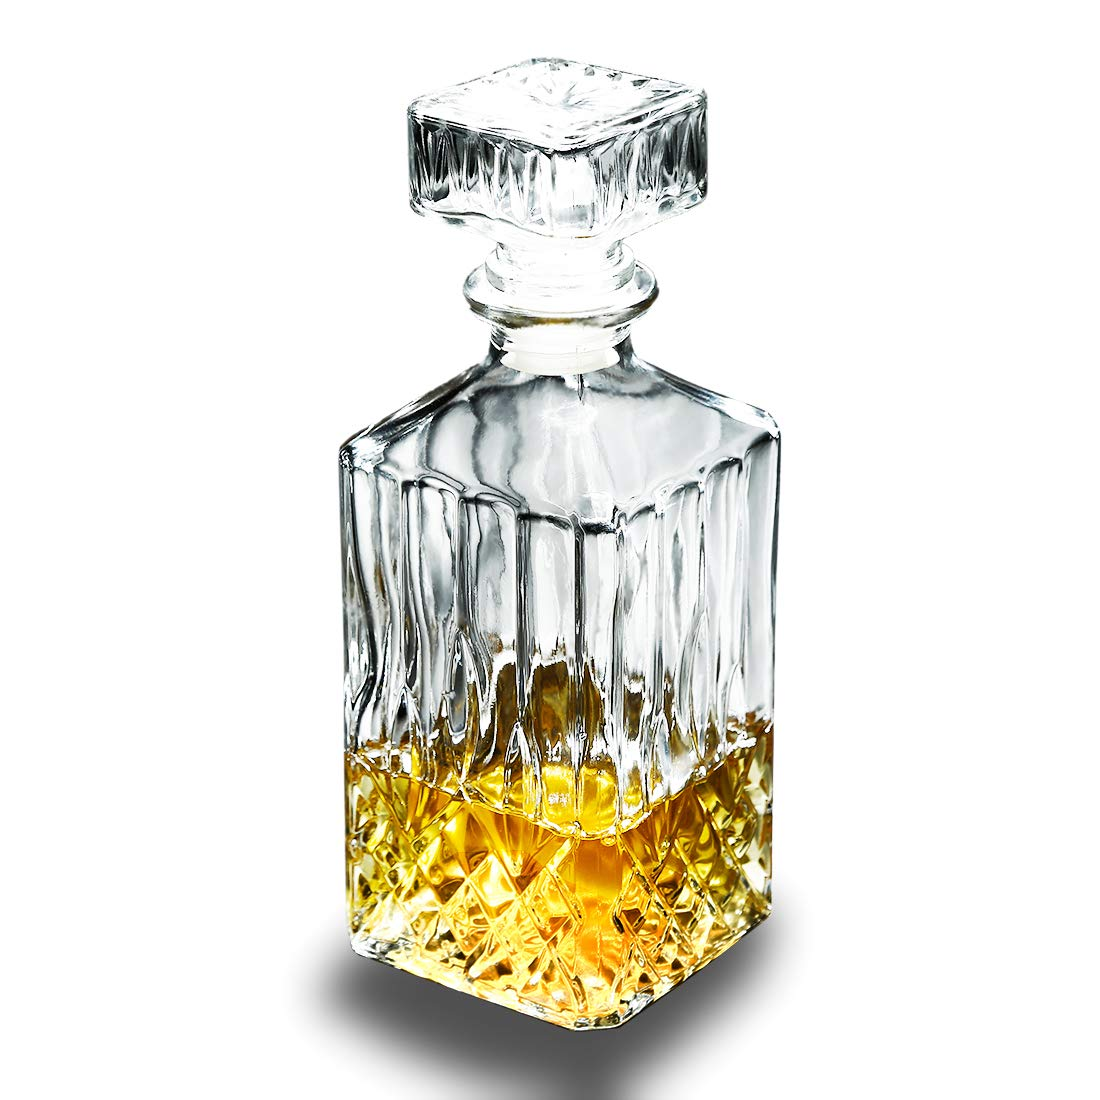 Classic Whiskey Decanter Square Carafe Crystal Glass Red Wine Decanter Bottle 1000ml (11.02x3.54 inch)